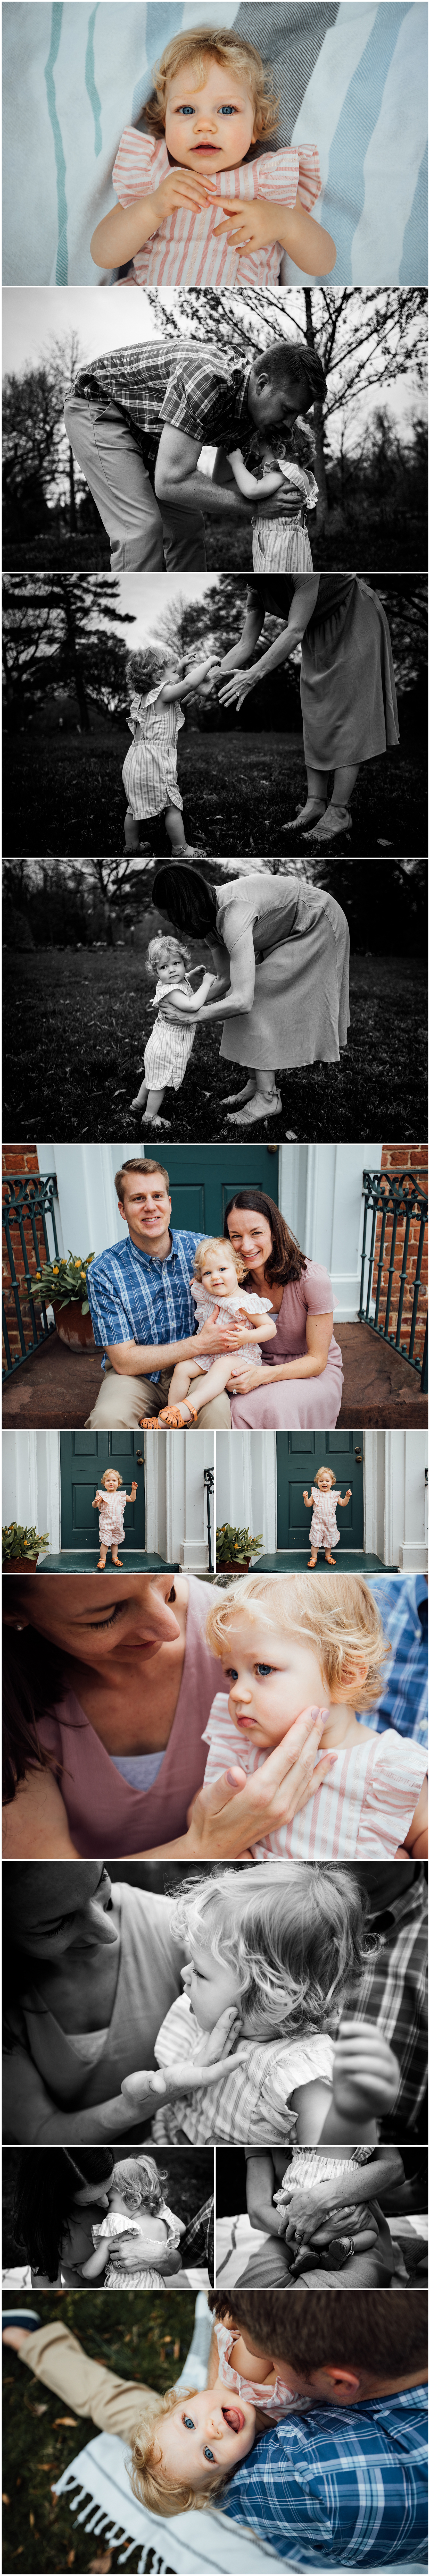 Huntsville Alabama family photographer spring family session by Rachel K Photo